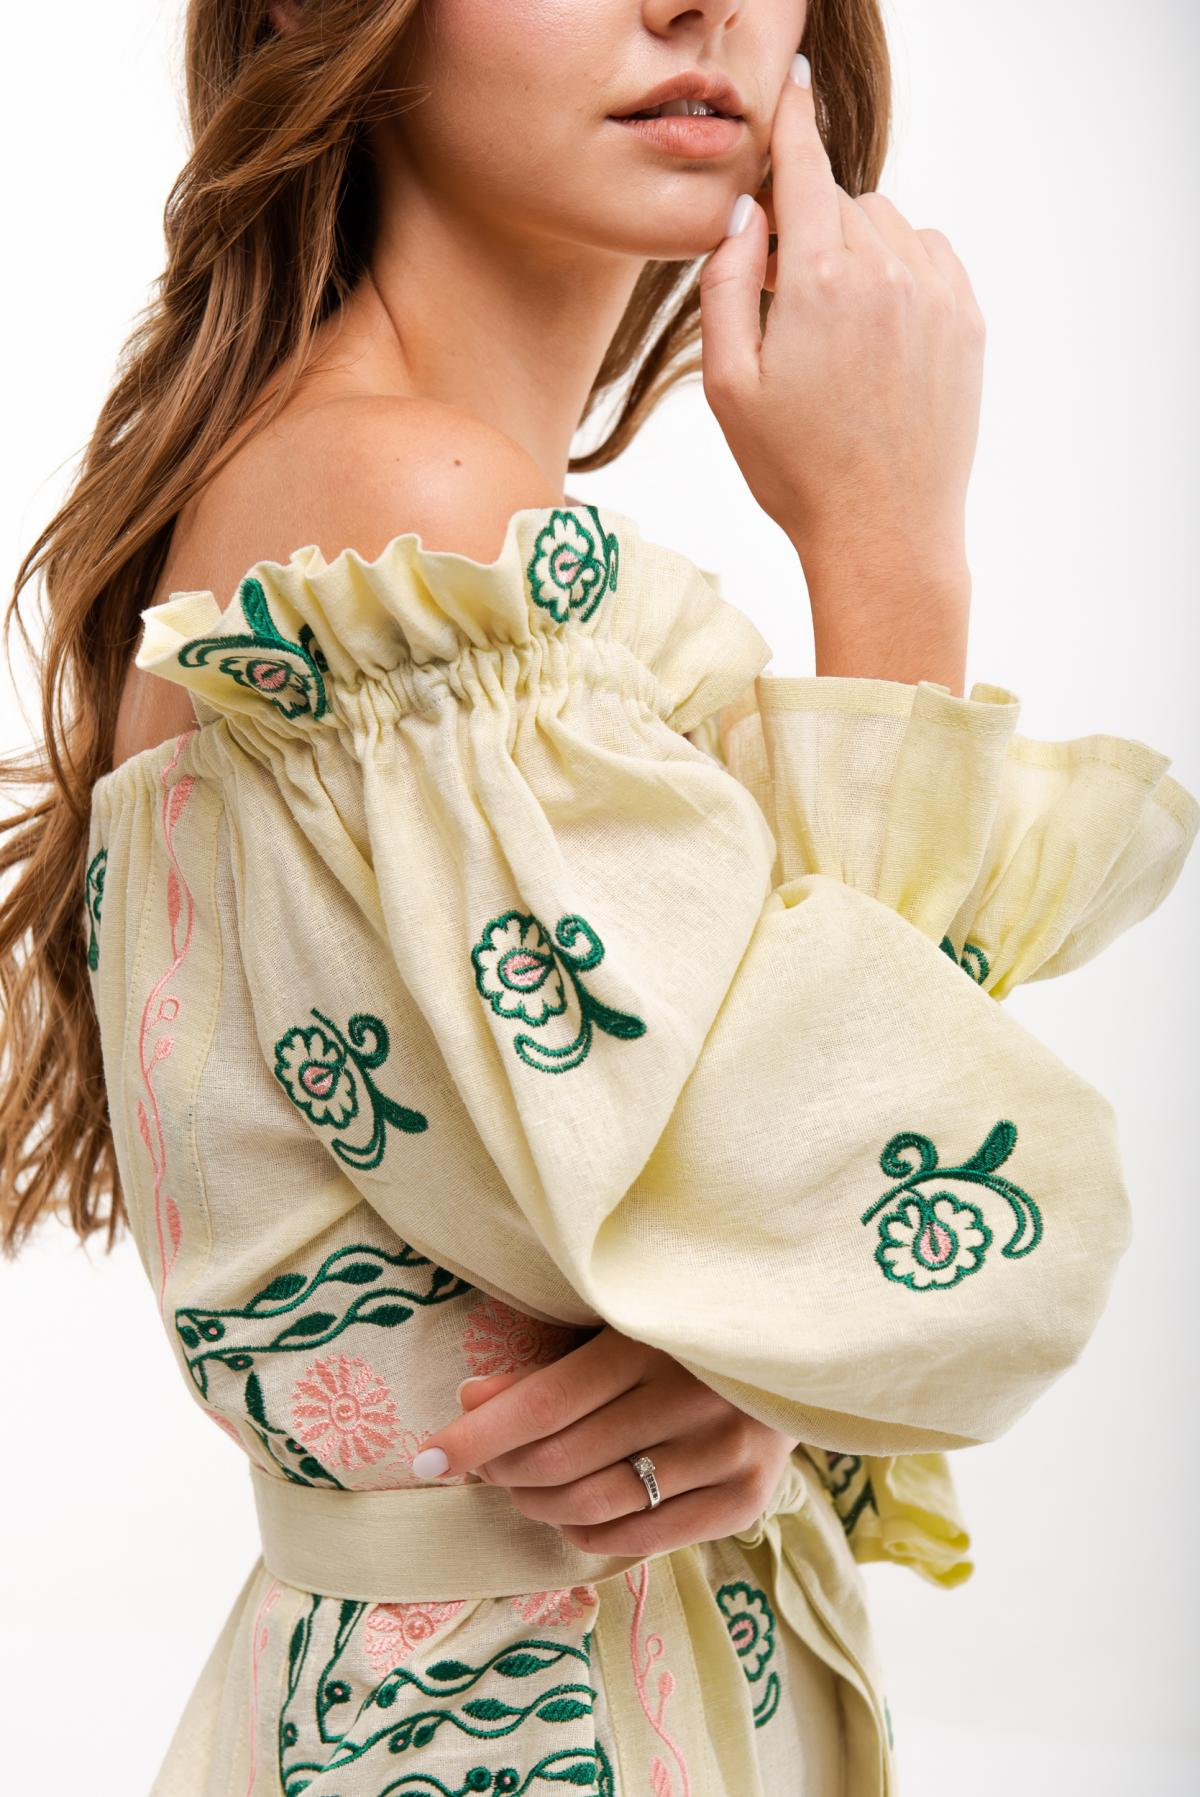 Embroidered dress Barvinok yellow. Photo №3. | Narodnyi dim Ukraine